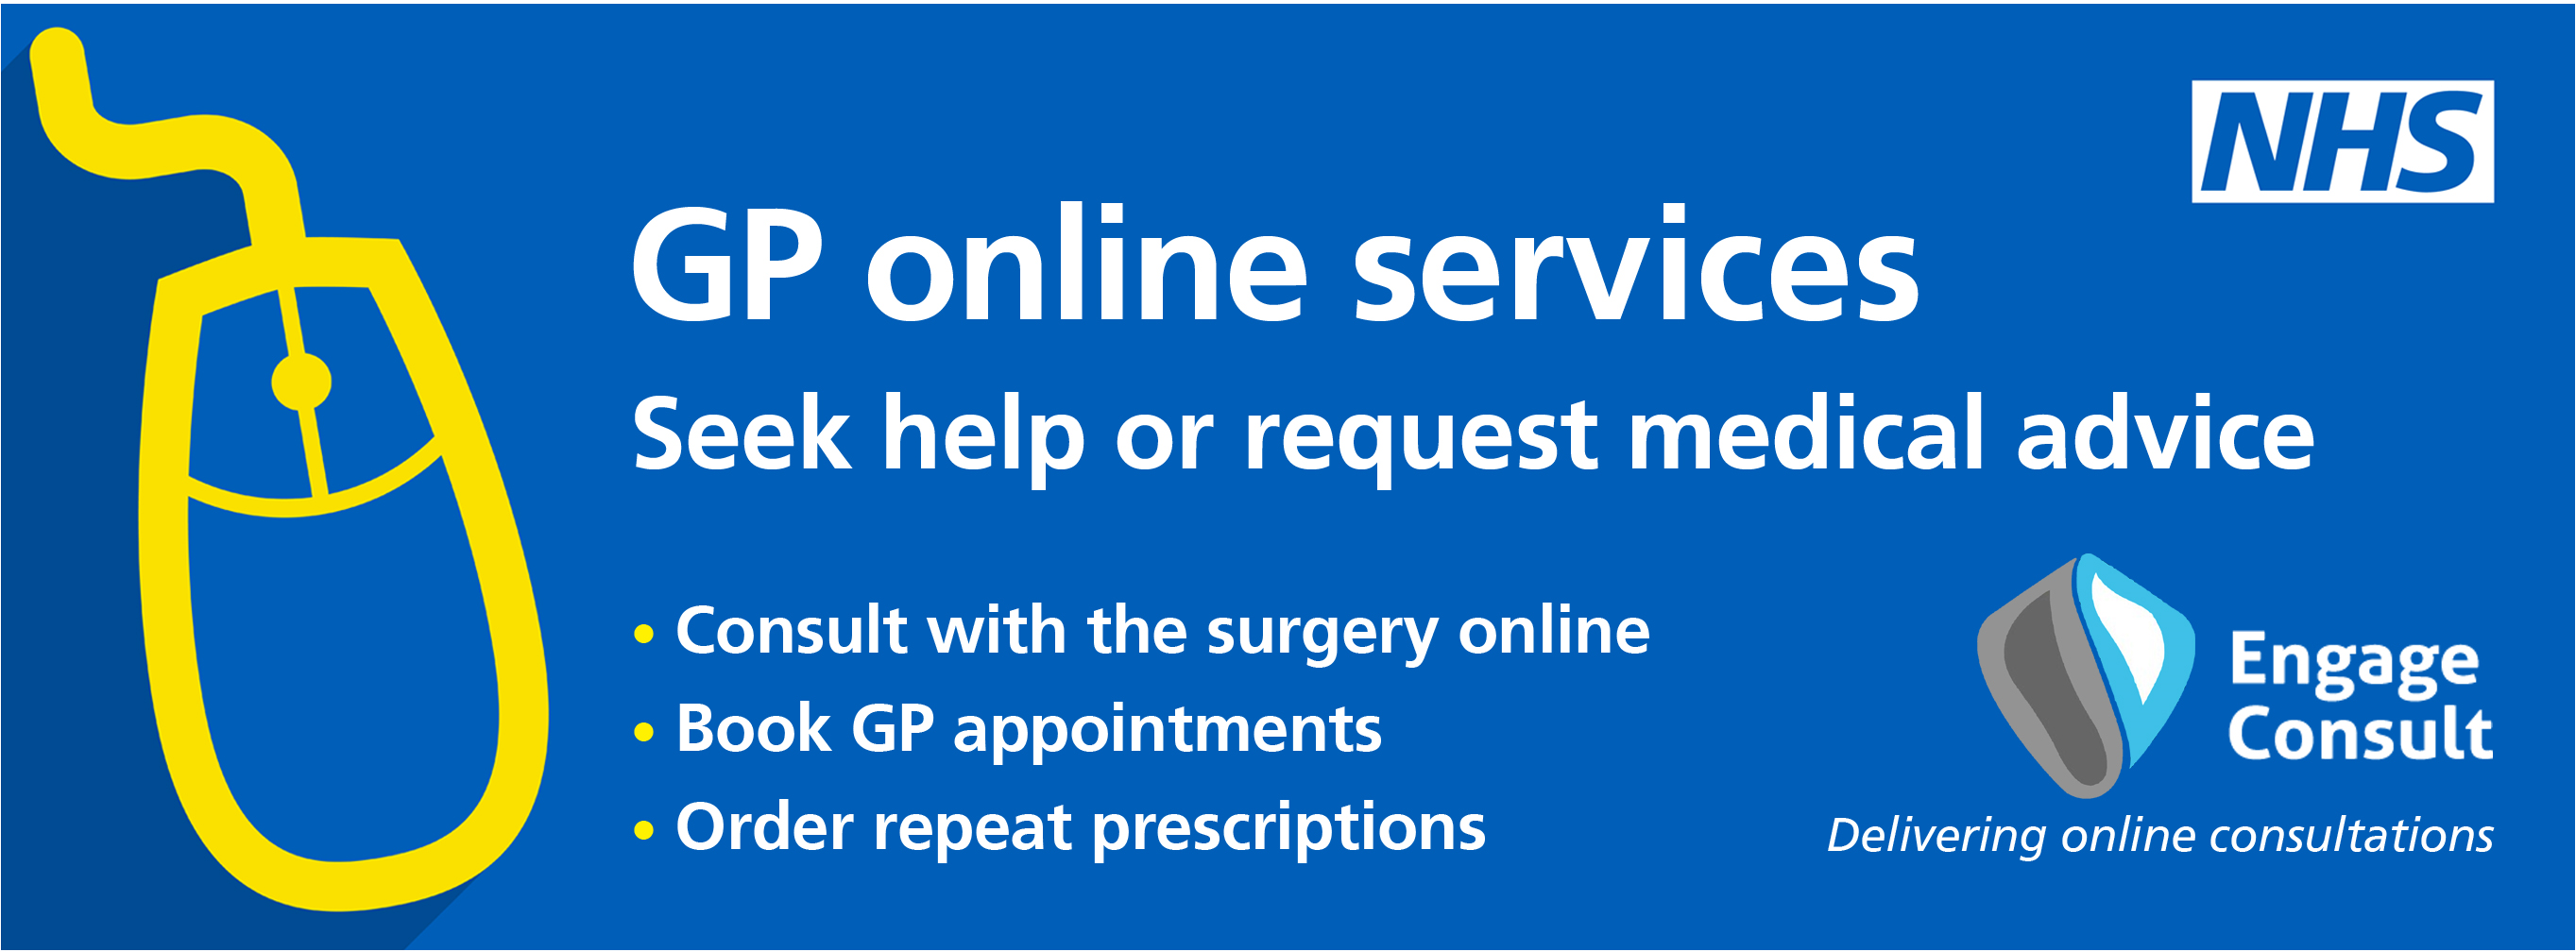 GP Online services seek help or request medical advice consult with the surgery online book gp appointments order repeat prescriptions engage consult delivering online consultations